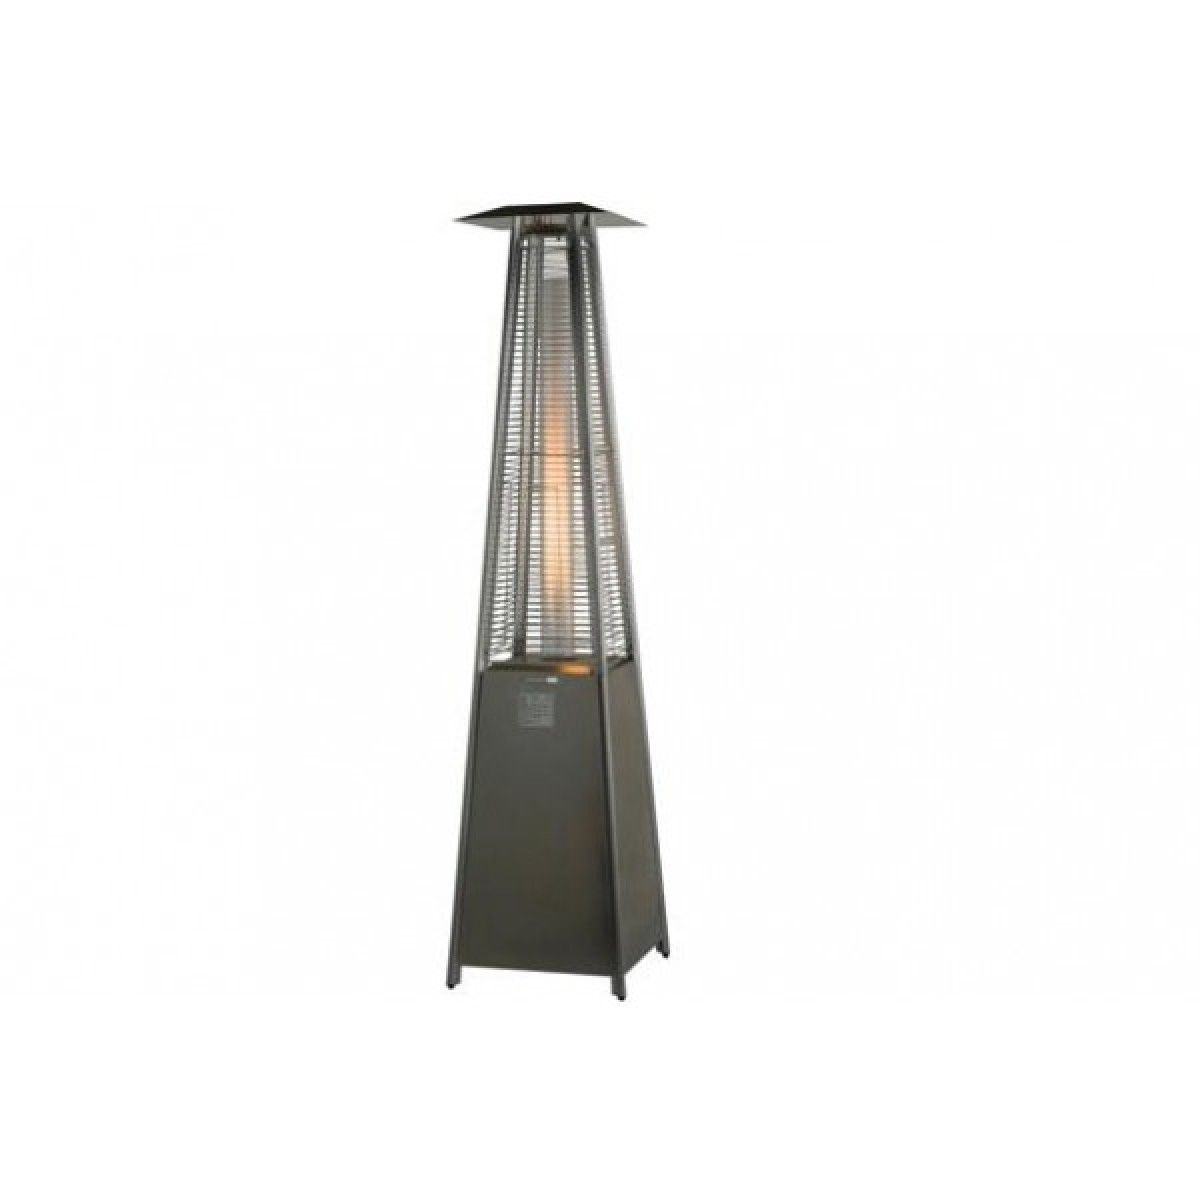 Lifestyle Lfs820 Athena 9 3kw Flame Gas Patio Heater